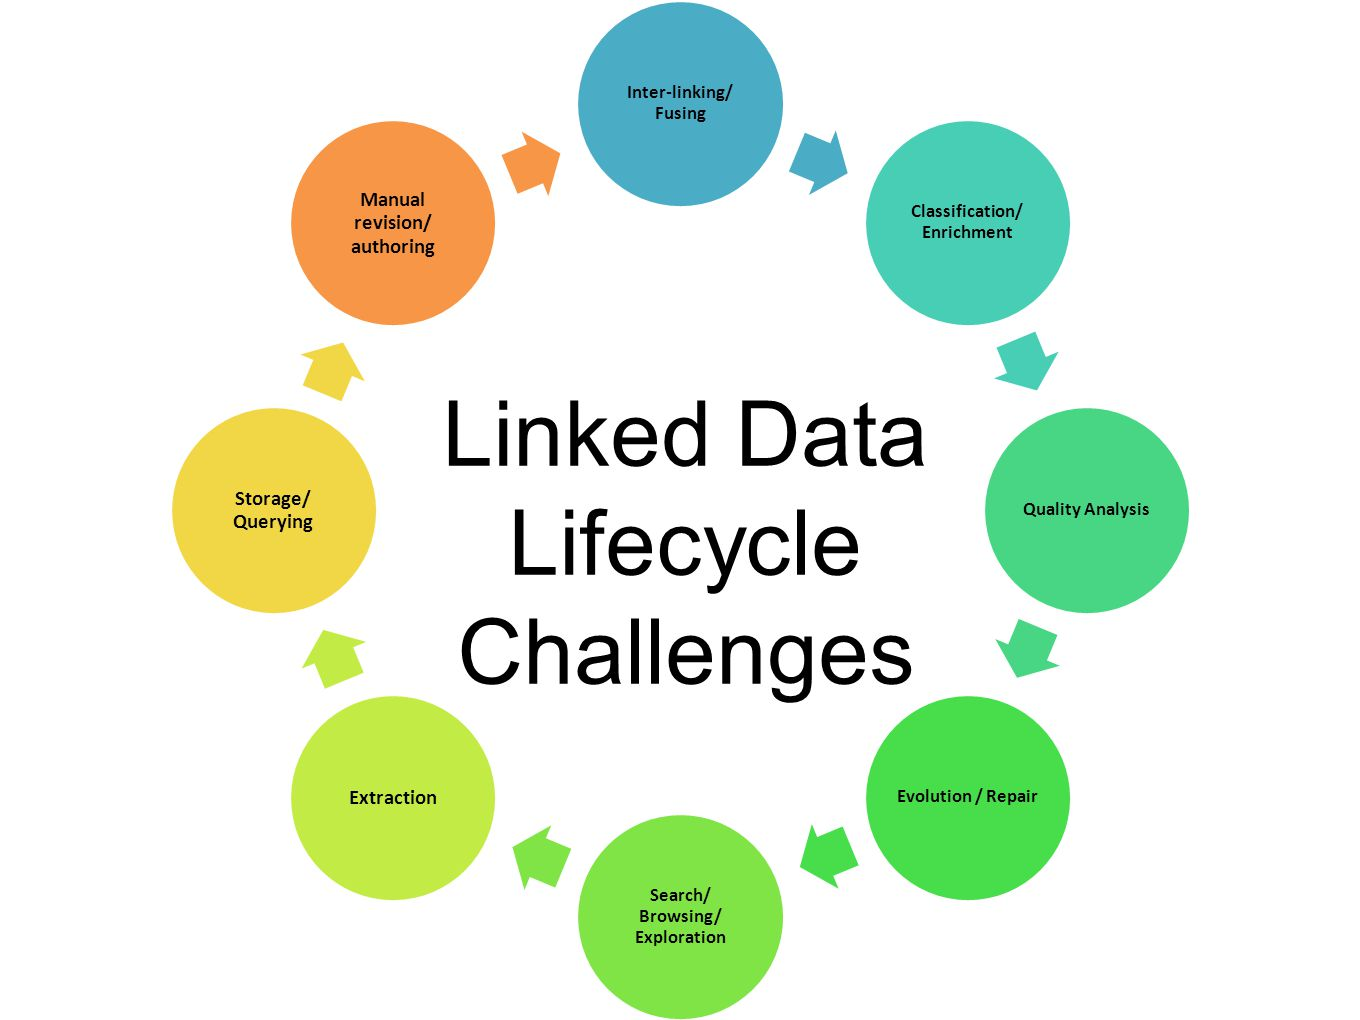 Inter-linking/ Fusing Classification/ Enrichment Quality AnalysisEvolution / Repair Search/ Browsing/ Exploration Extraction Storage/ Querying Manual revision/ authoring Linked Data Lifecycle Challenges